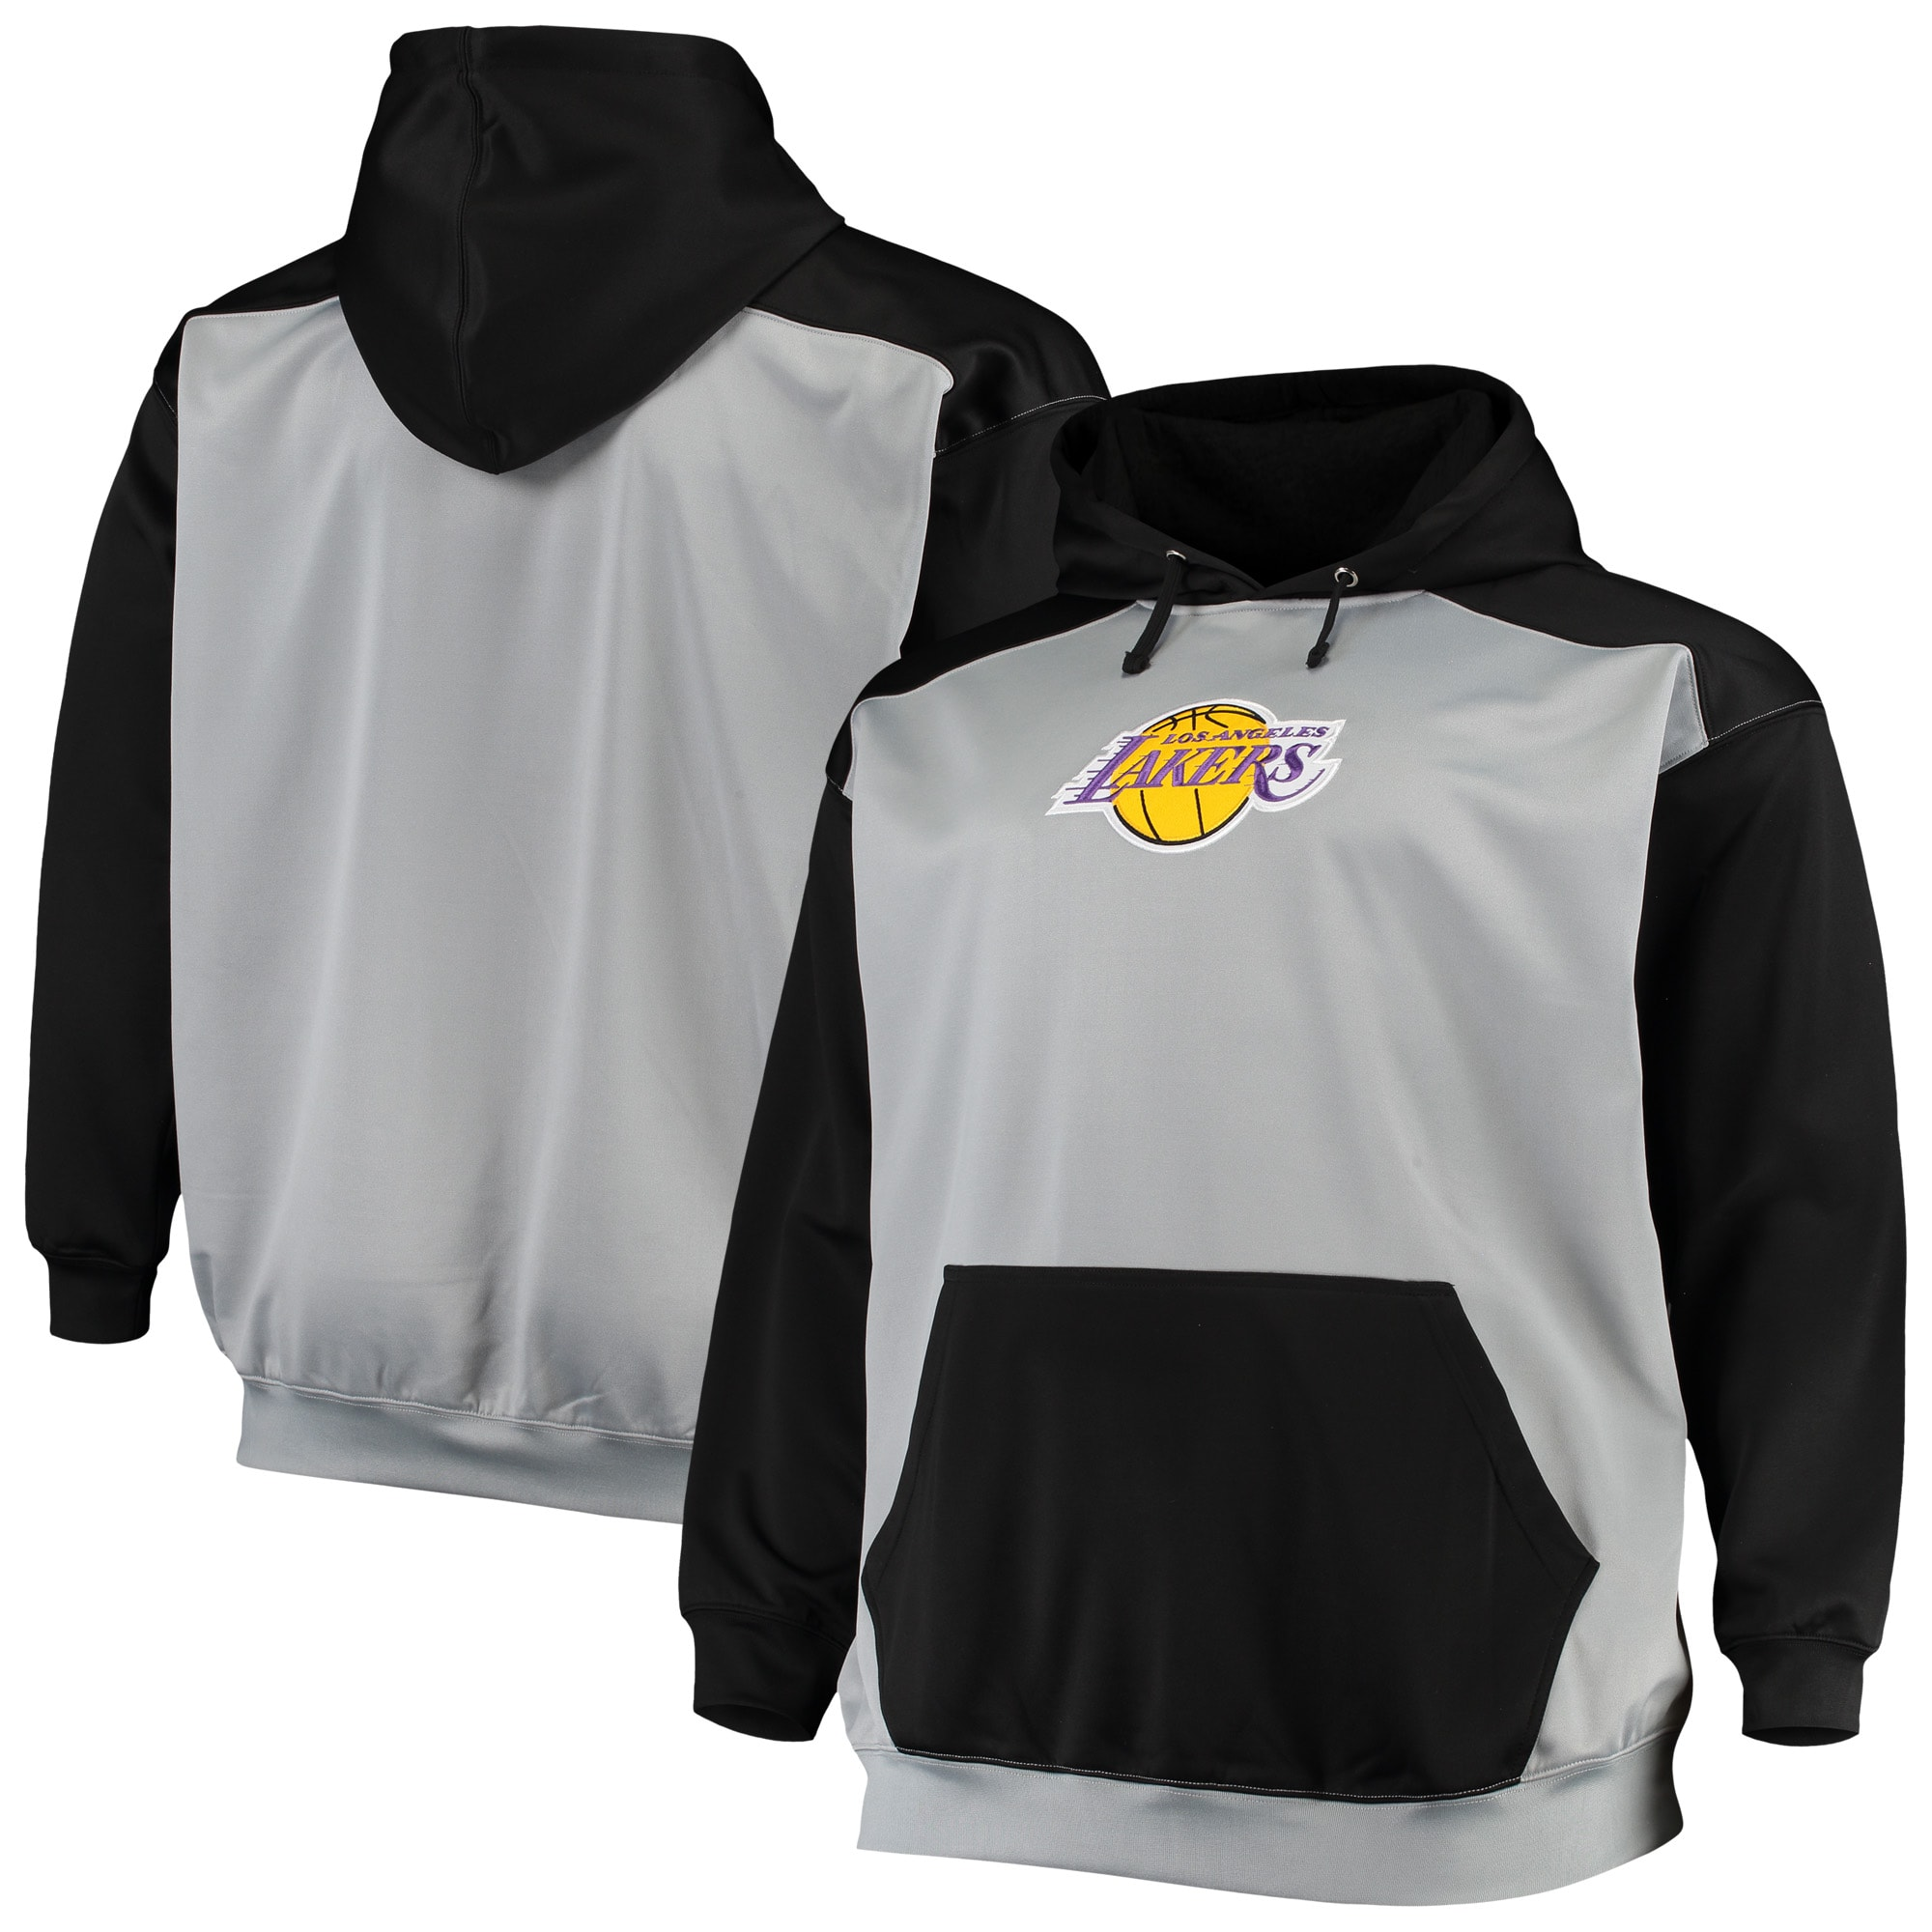 Los Angeles Lakers Colorblock Raglan Pouch Pullover Hoodie - Gray/Black